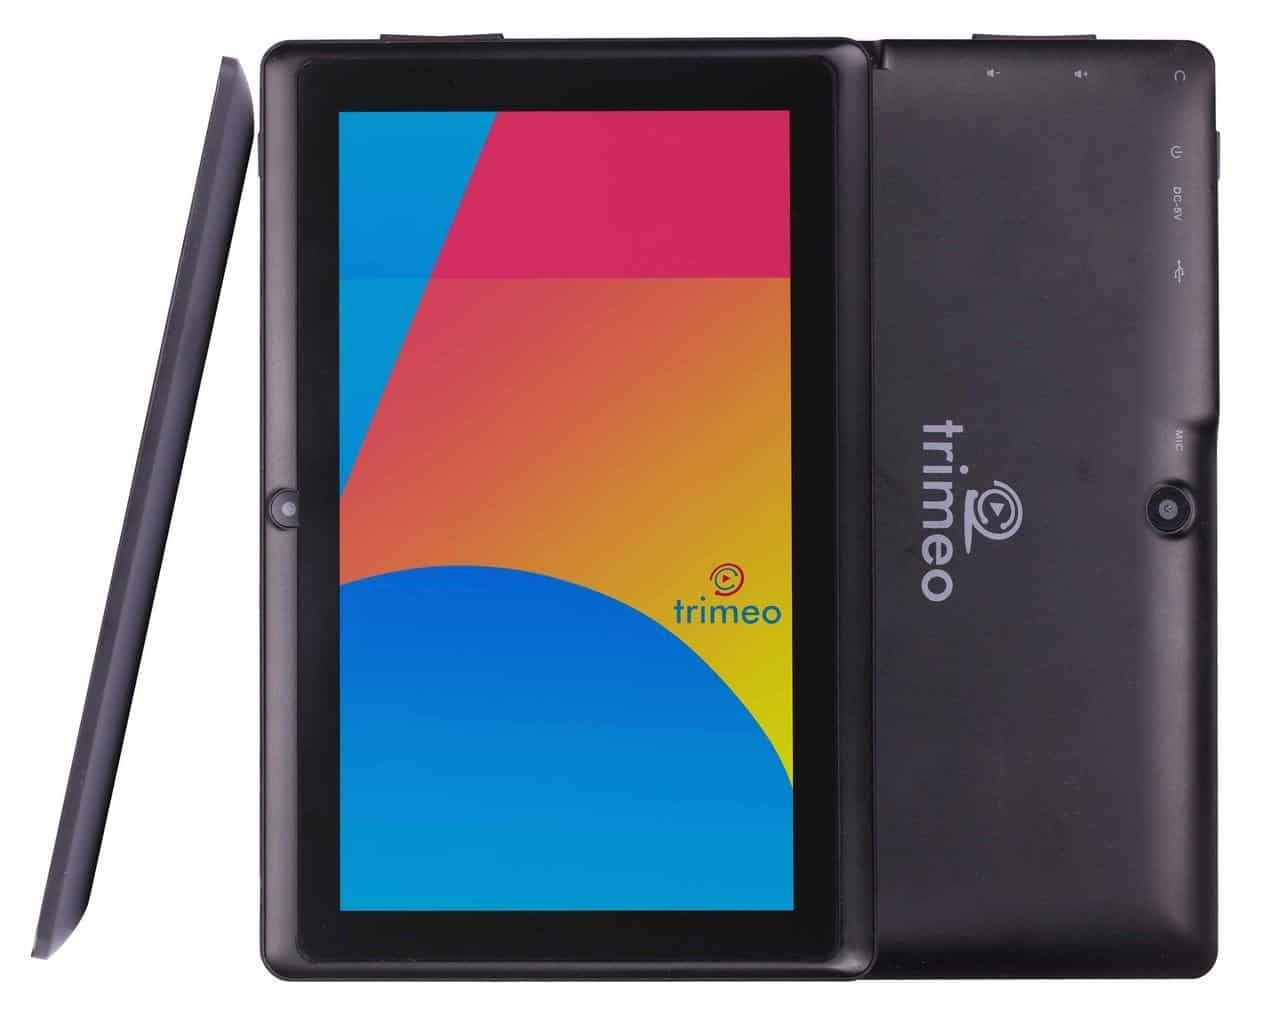 Trimeo Black Quad Core Android Tablet